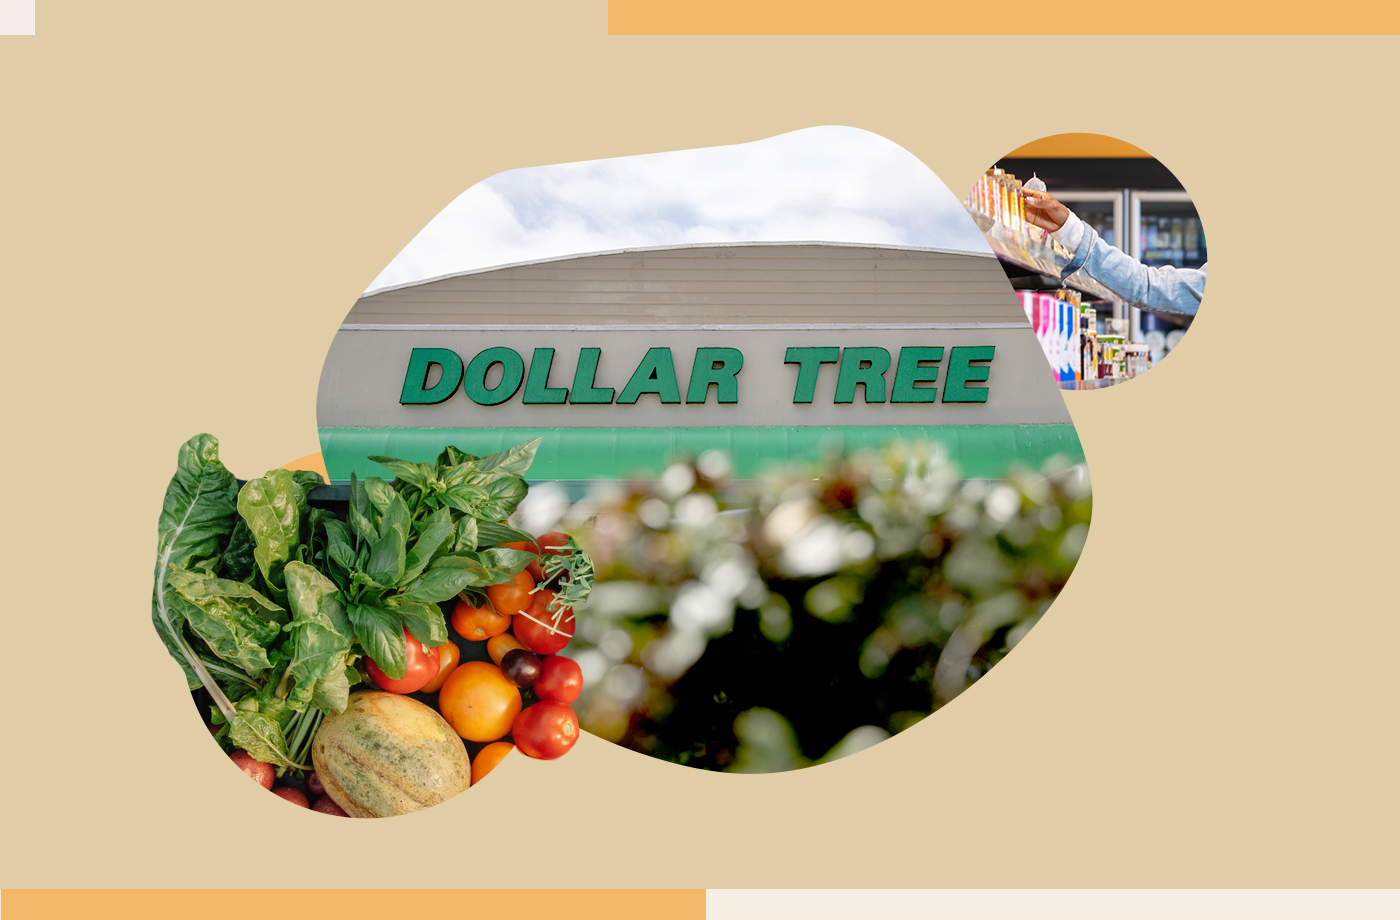 Thumbnail for Dollar Stores Aren't the Answer To Alleviating Food Insecurity, So What Is?